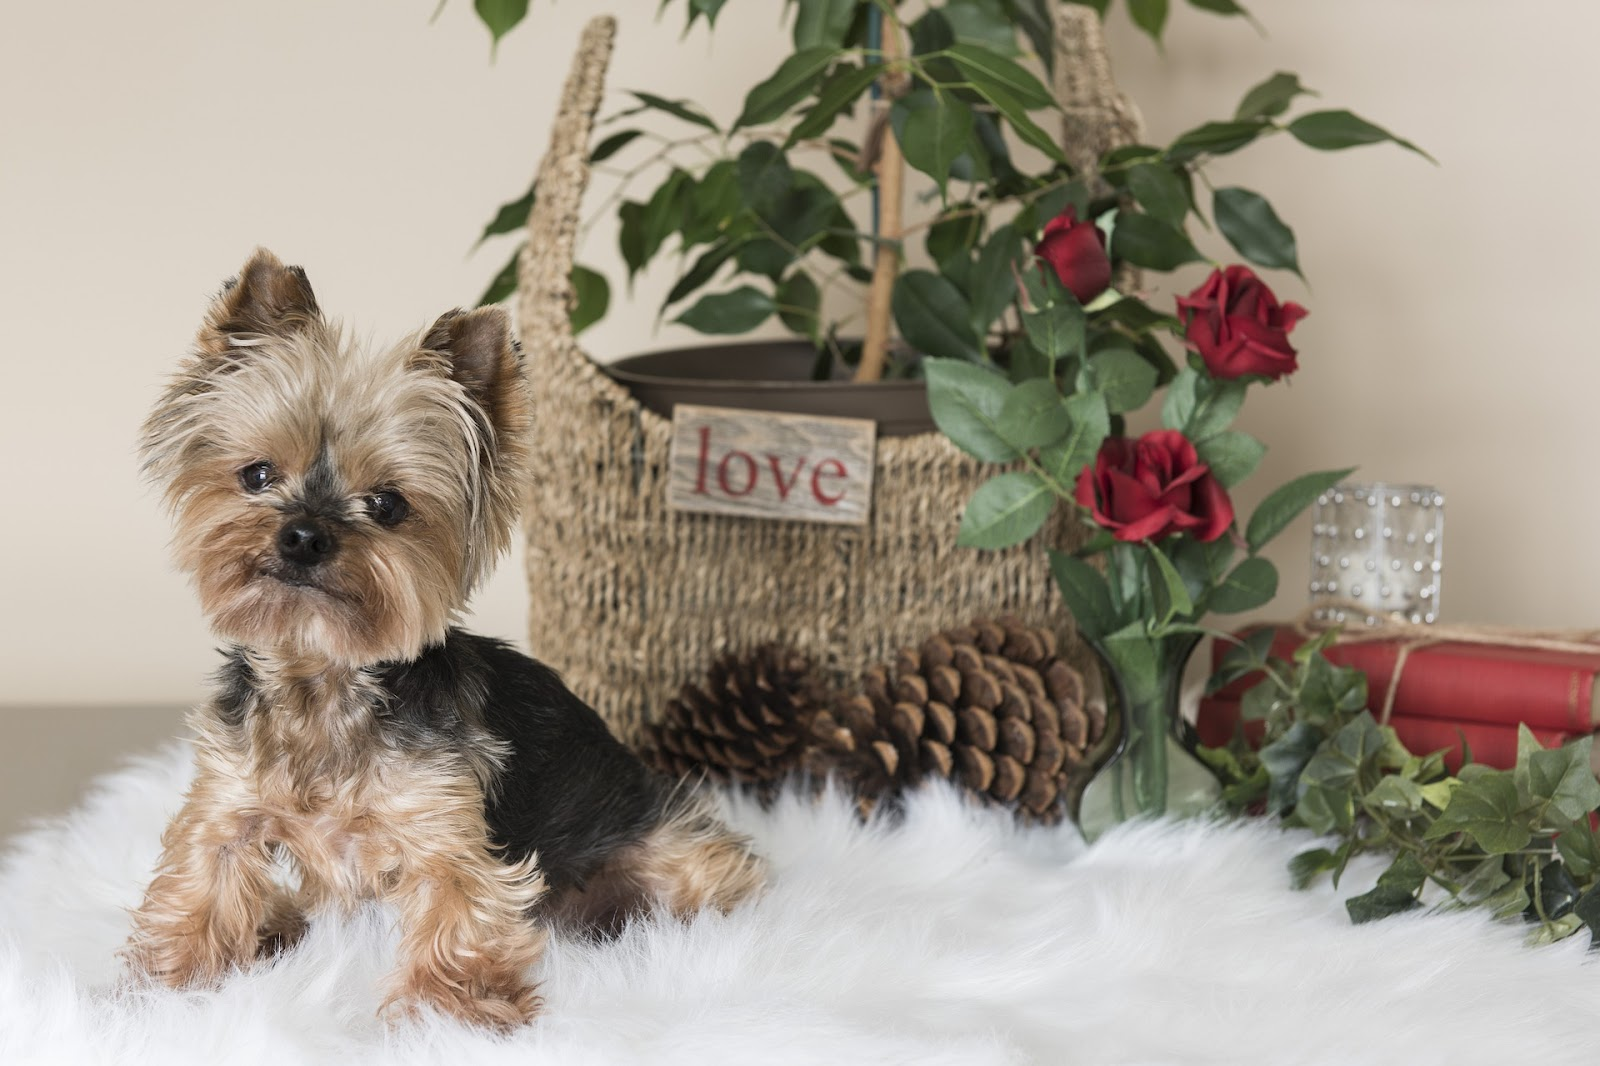 cute small brown dog next to pine cones, basket, roses, and on white rug, holiday theme